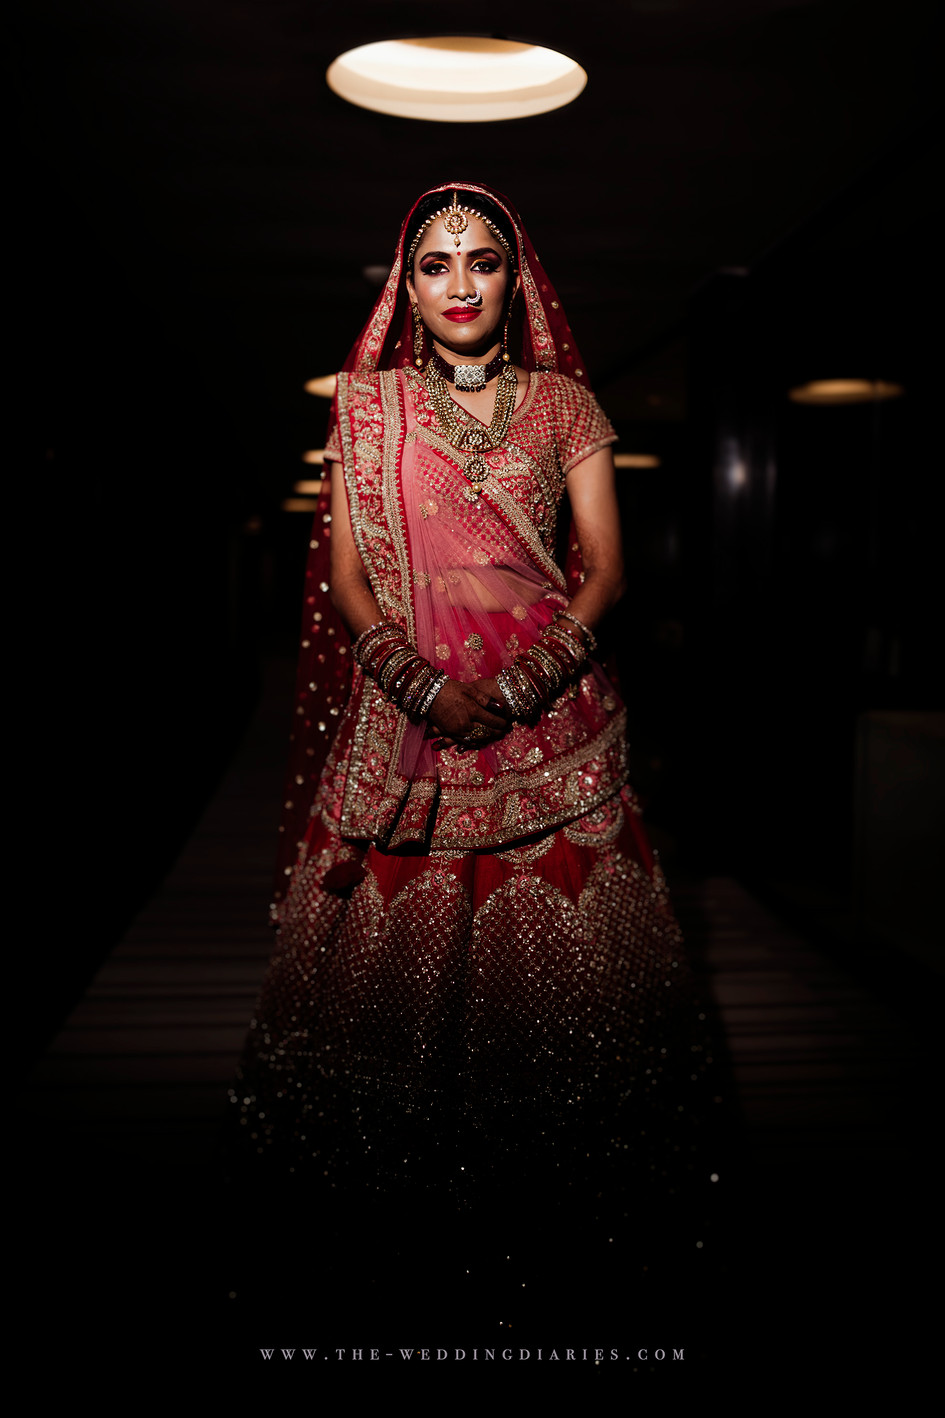 TheWeddingDiaries wedding bridal portrait